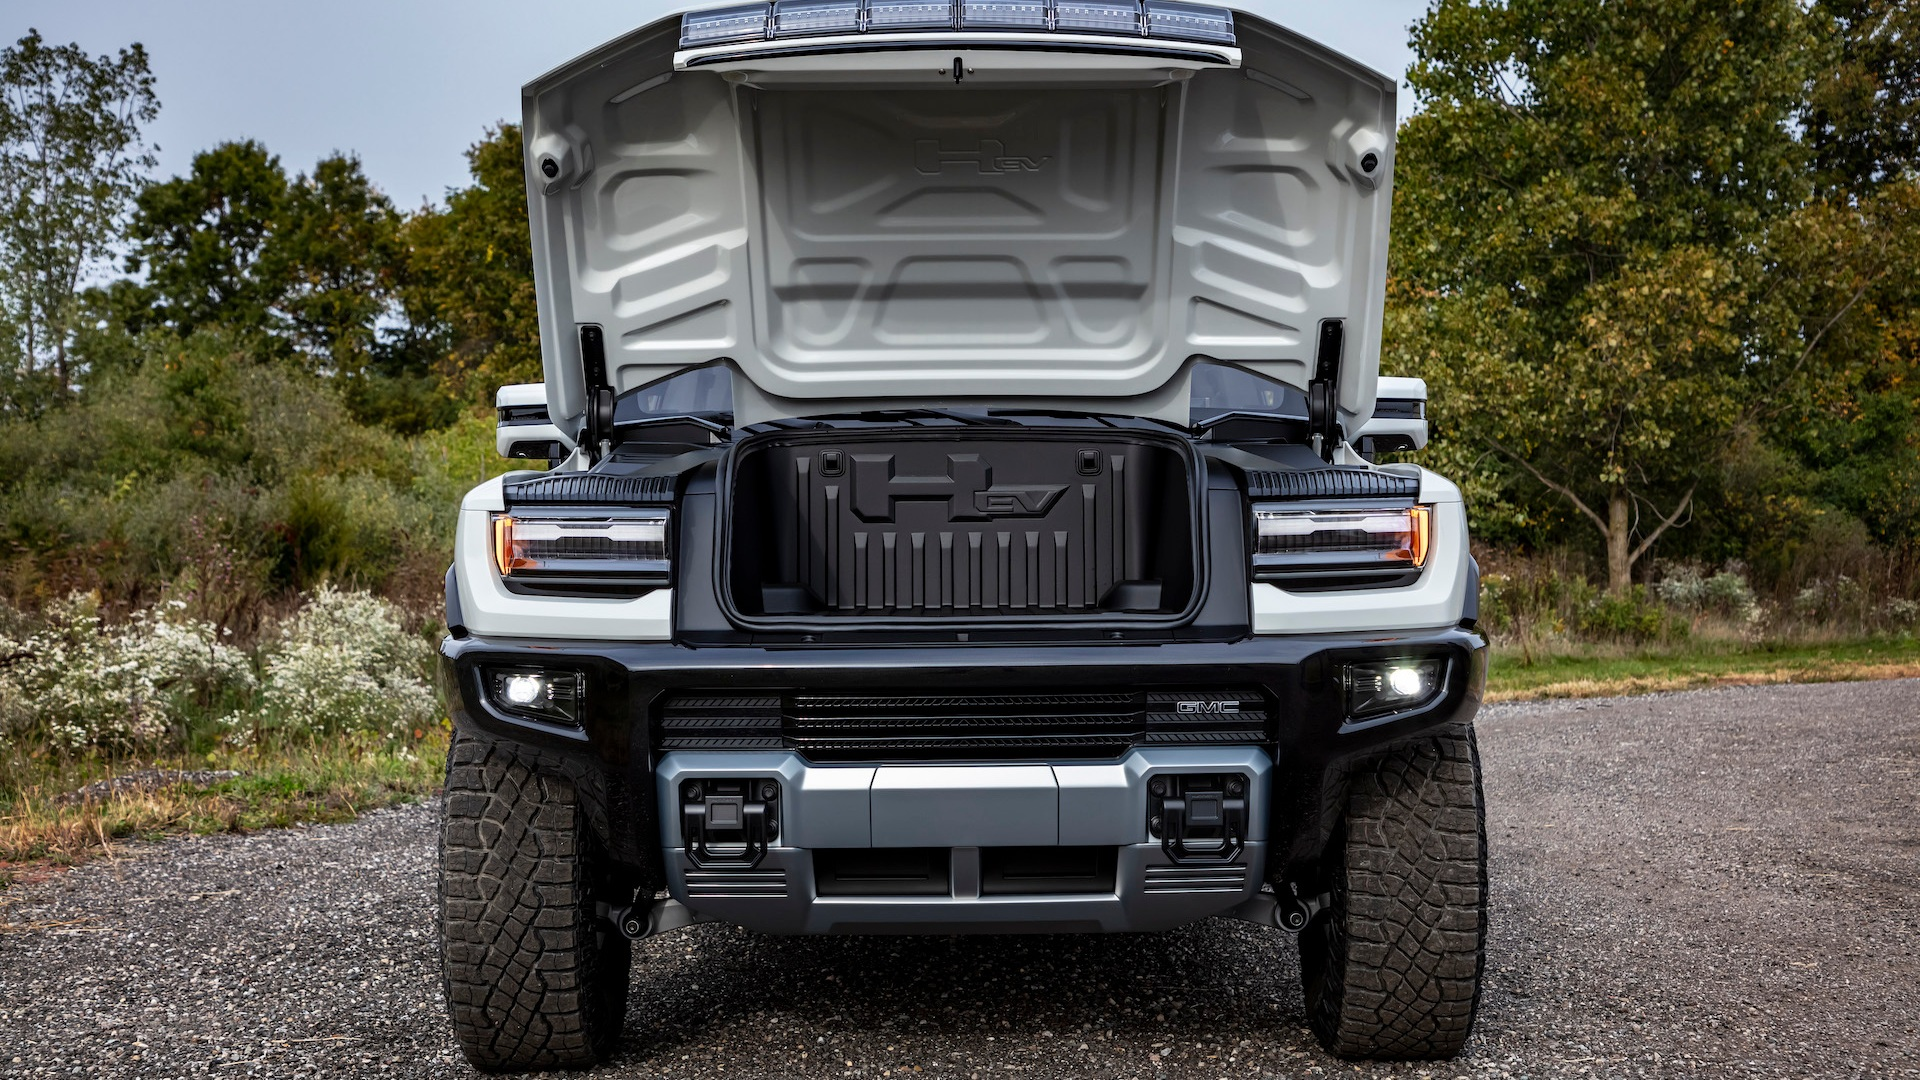 The trunk of the GMC Hummer EV 2022